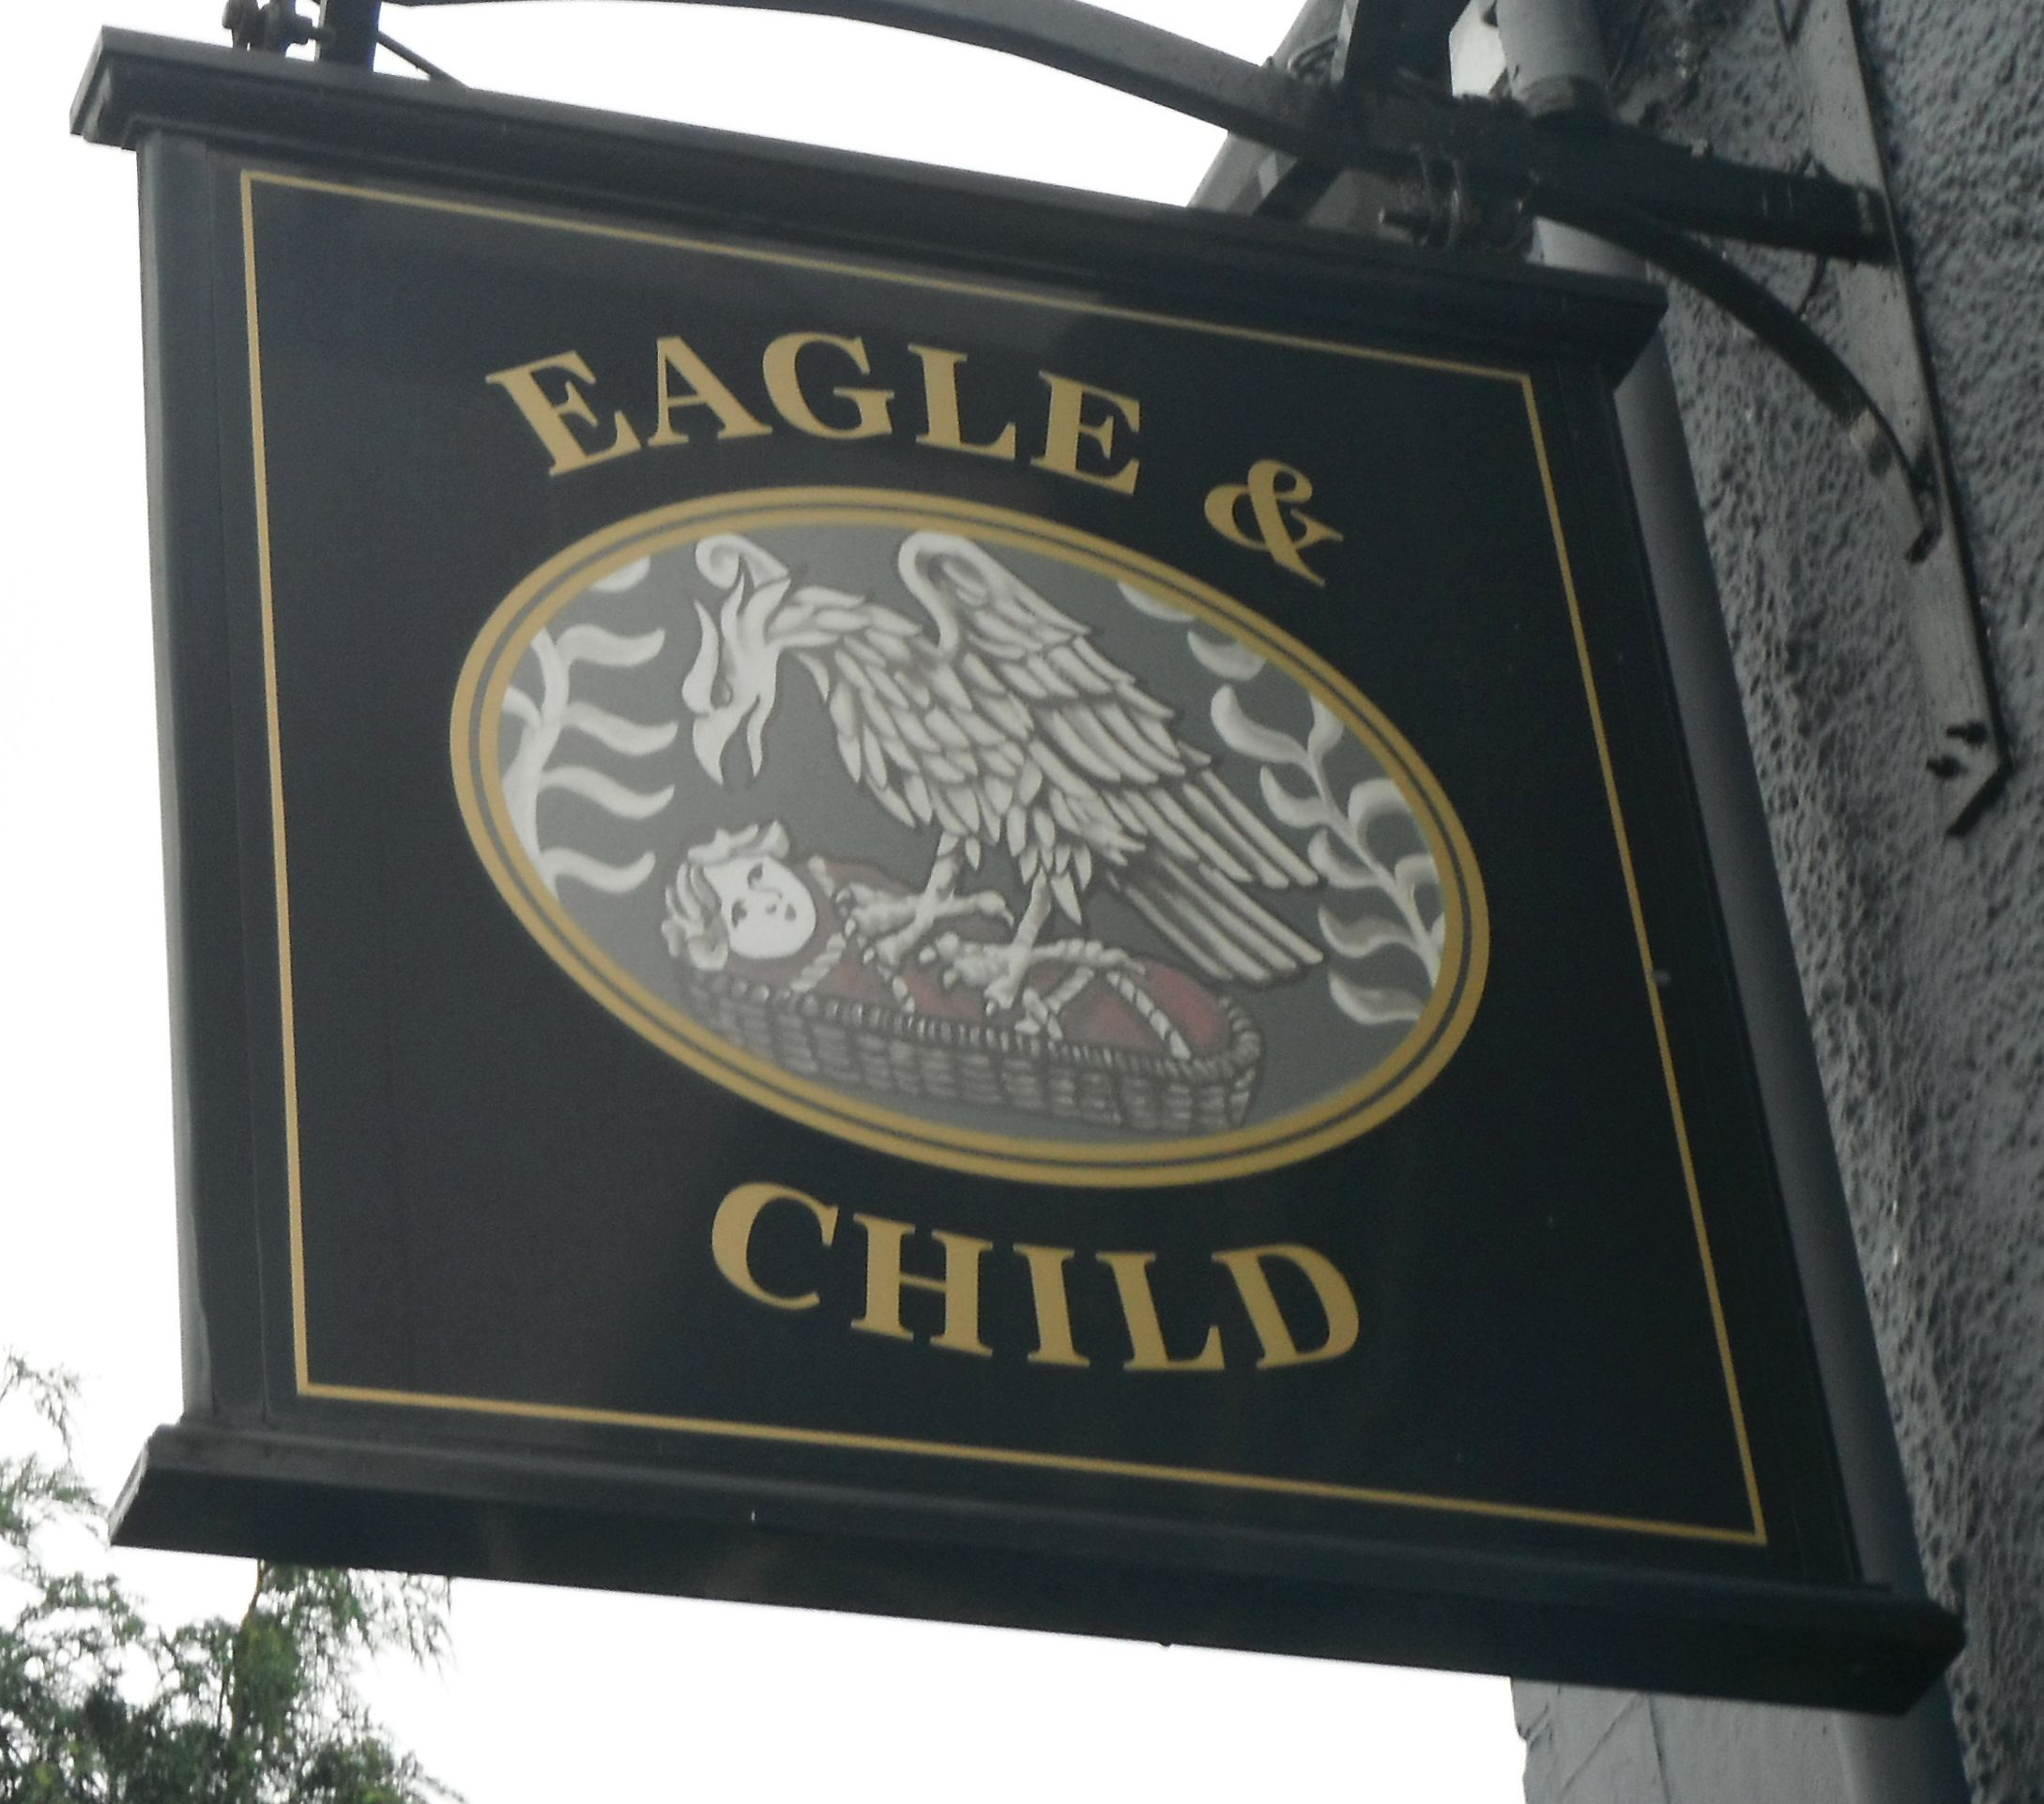 Photo taken by me – the Pub Sign for The Eagle And Child  Ashton-In-Makerfield Lancashire